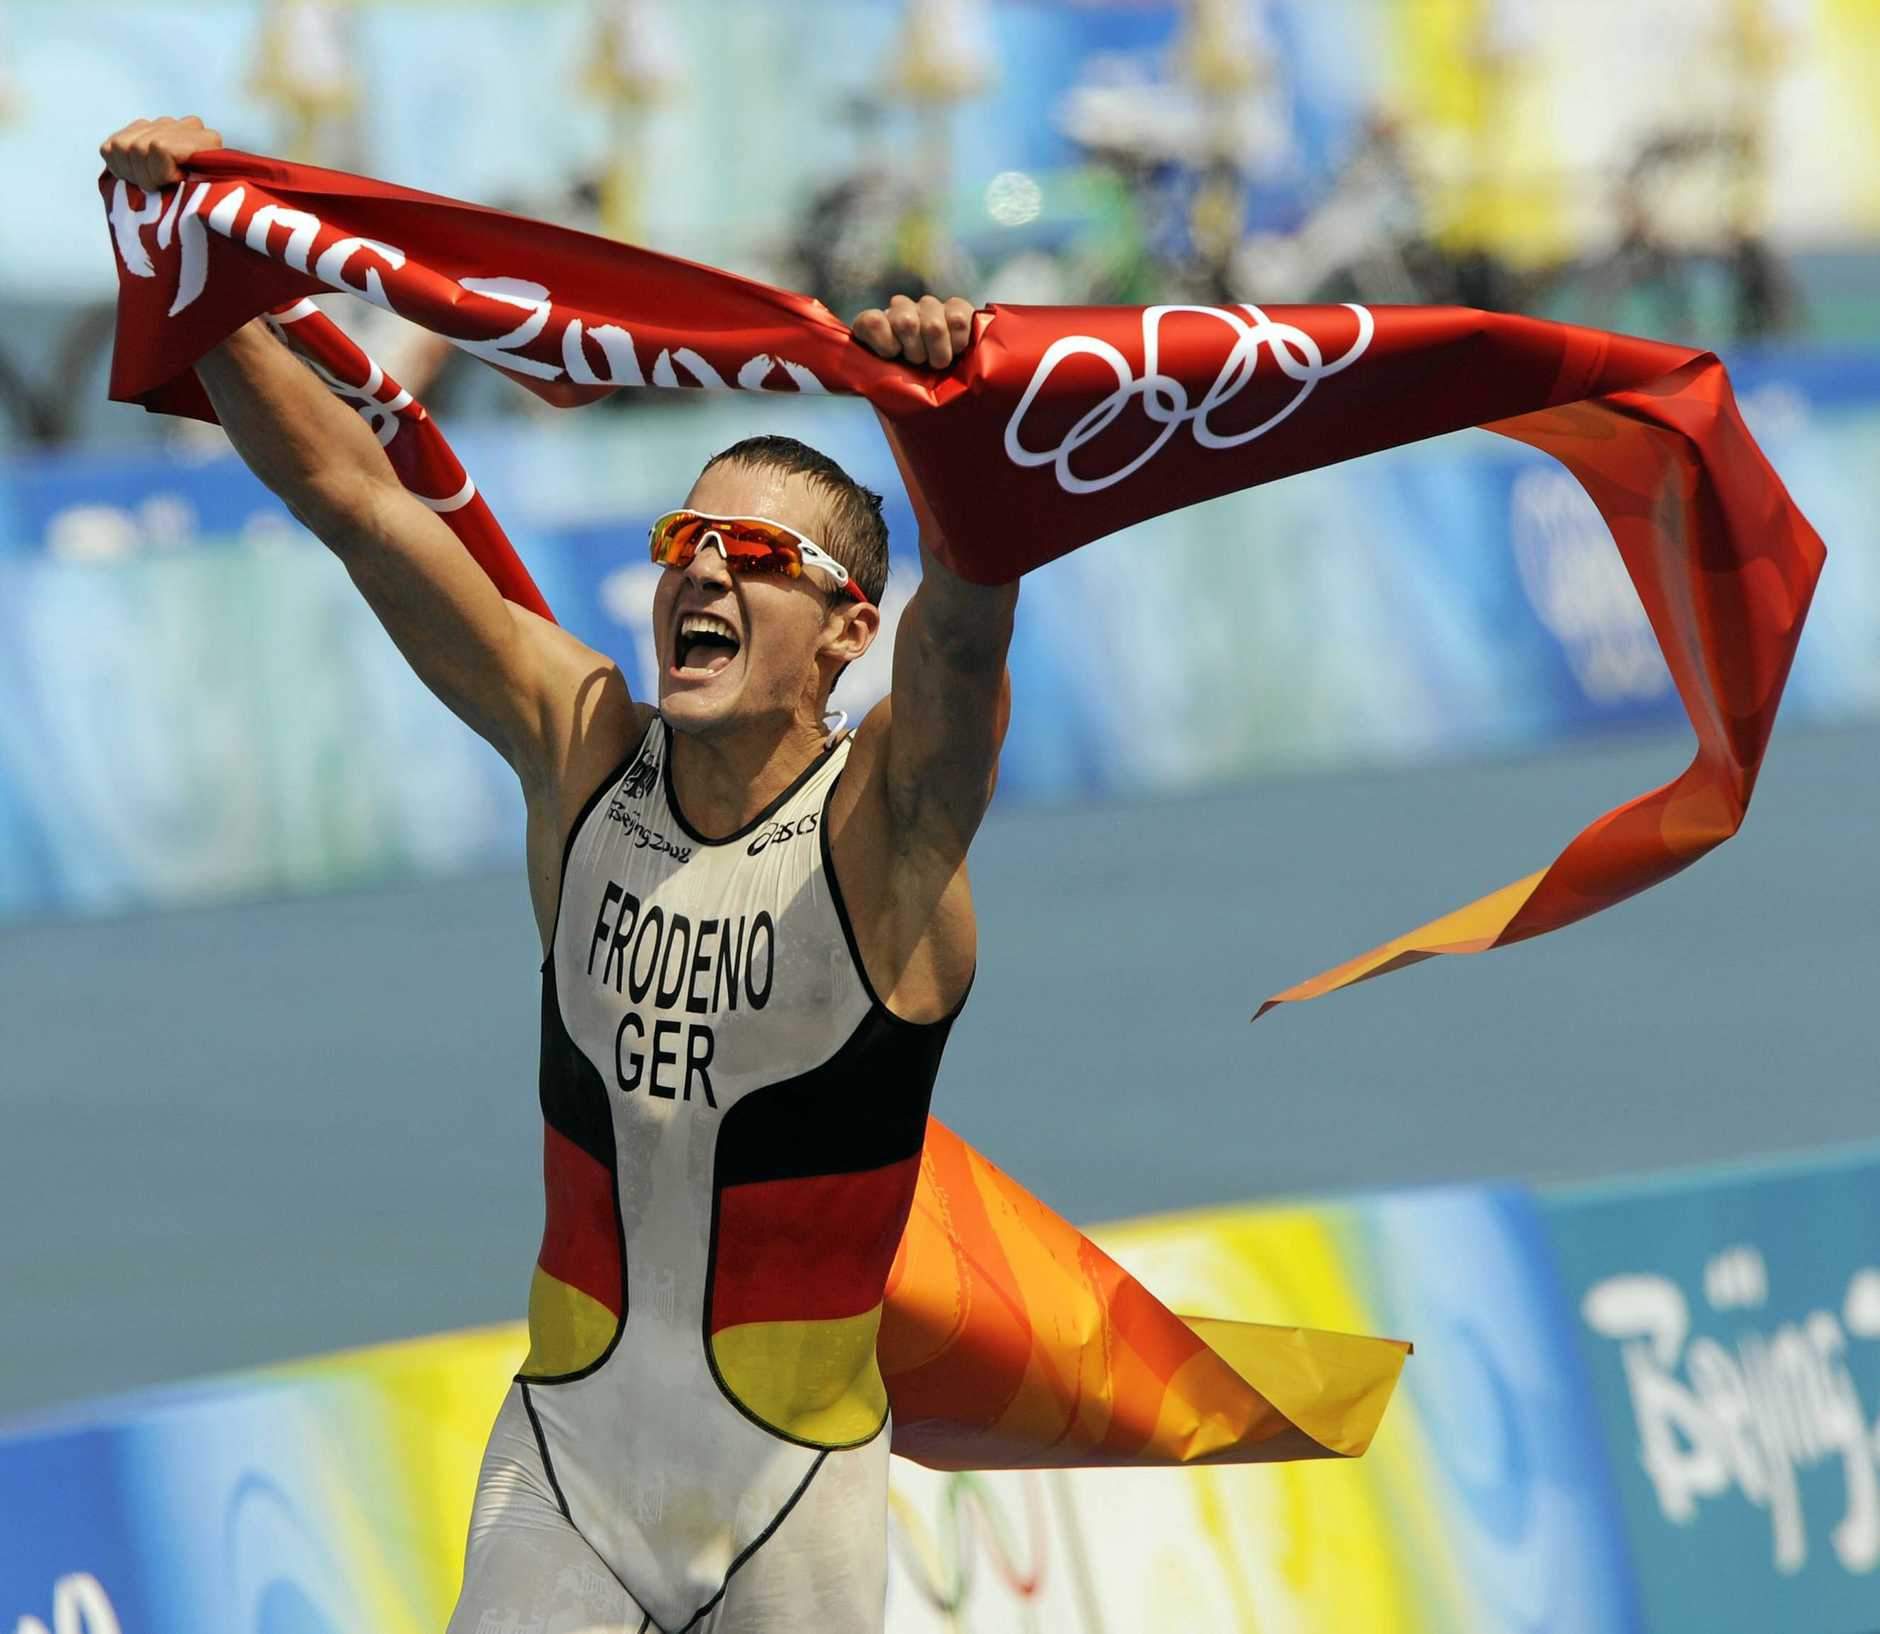 Jan Frodeno celebrates winning gold at the Beijing Olympics in 2008.